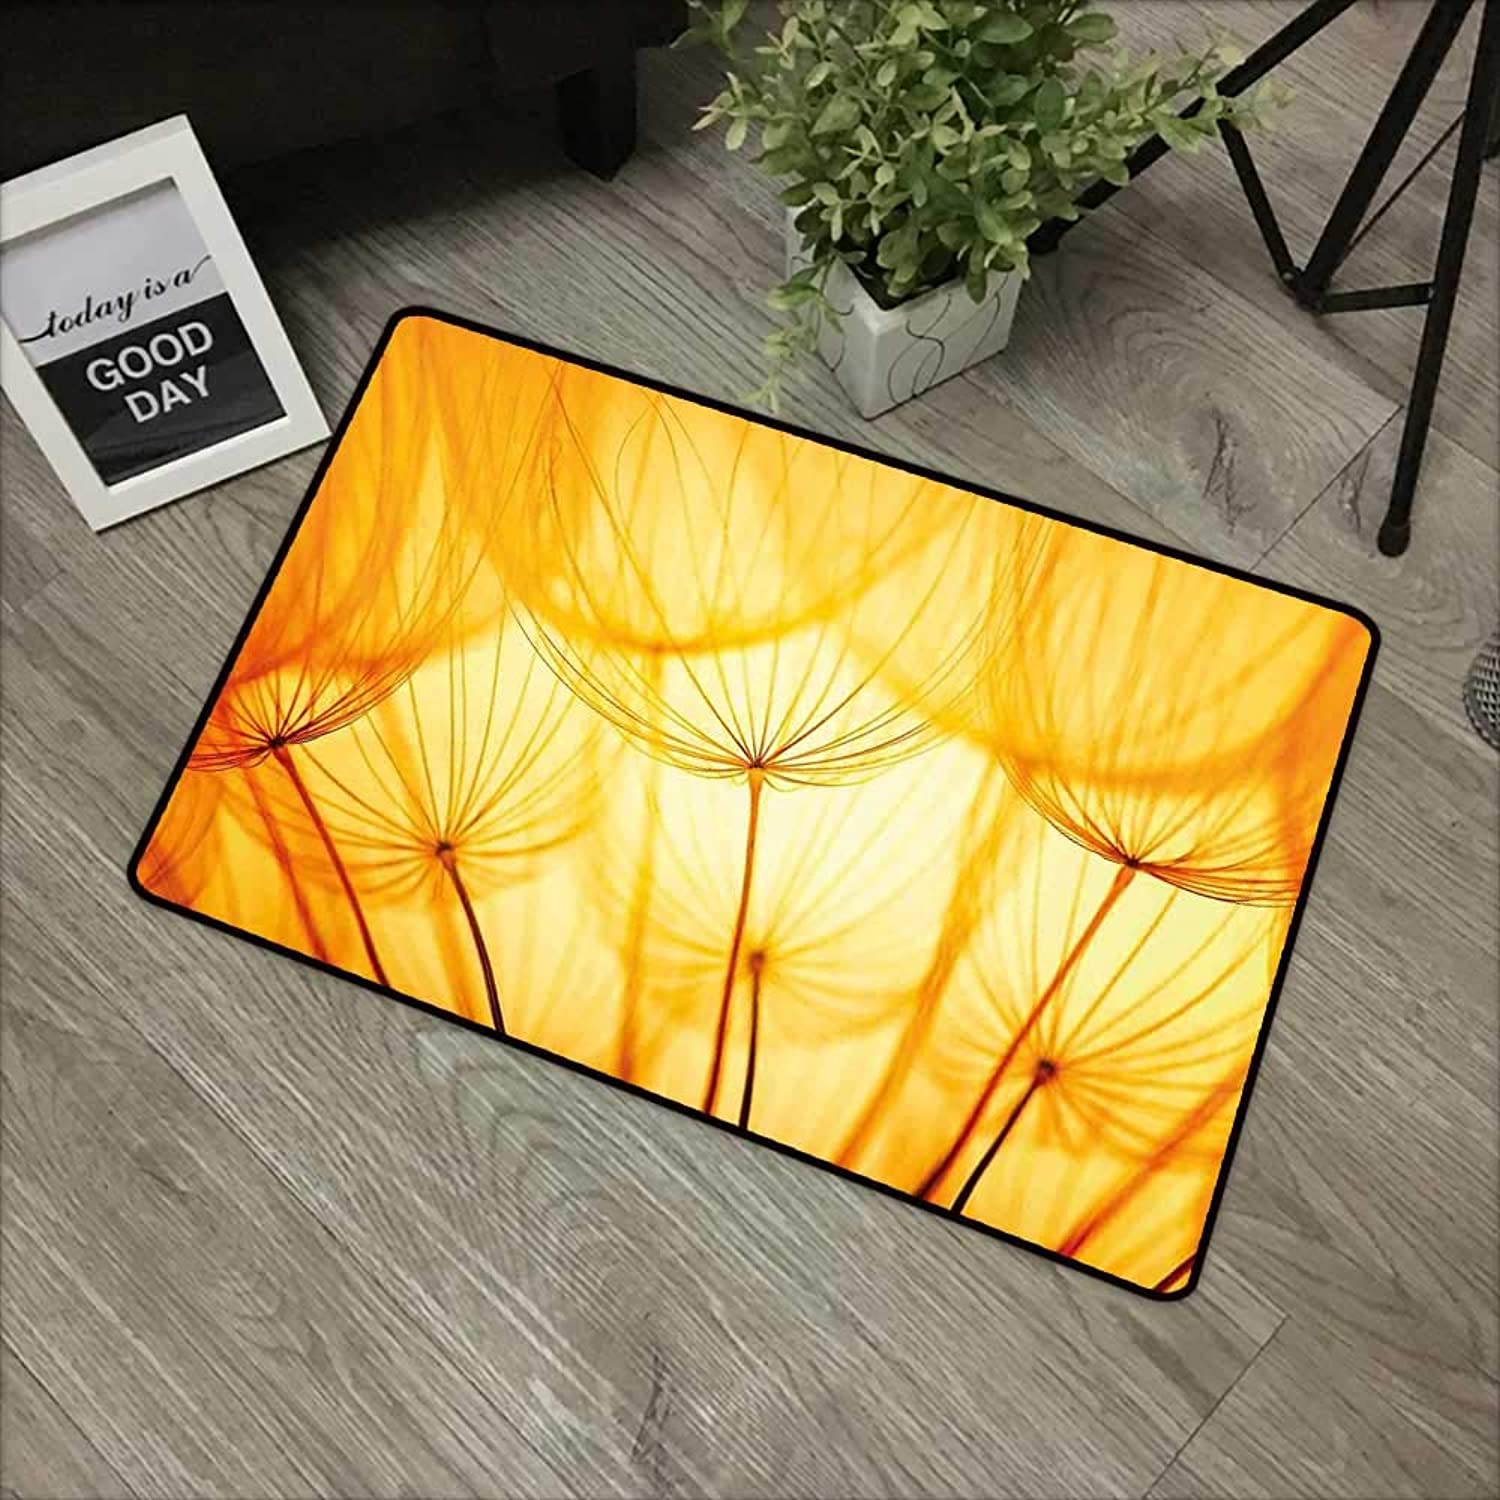 Interior Door mat W35 x L59 INCH Yellow,Joy of Dandelion Flower with Garden Seeds in Hot Summer Time Themed Artwork,Merigold and White with Non-Slip Backing Door Mat Carpet